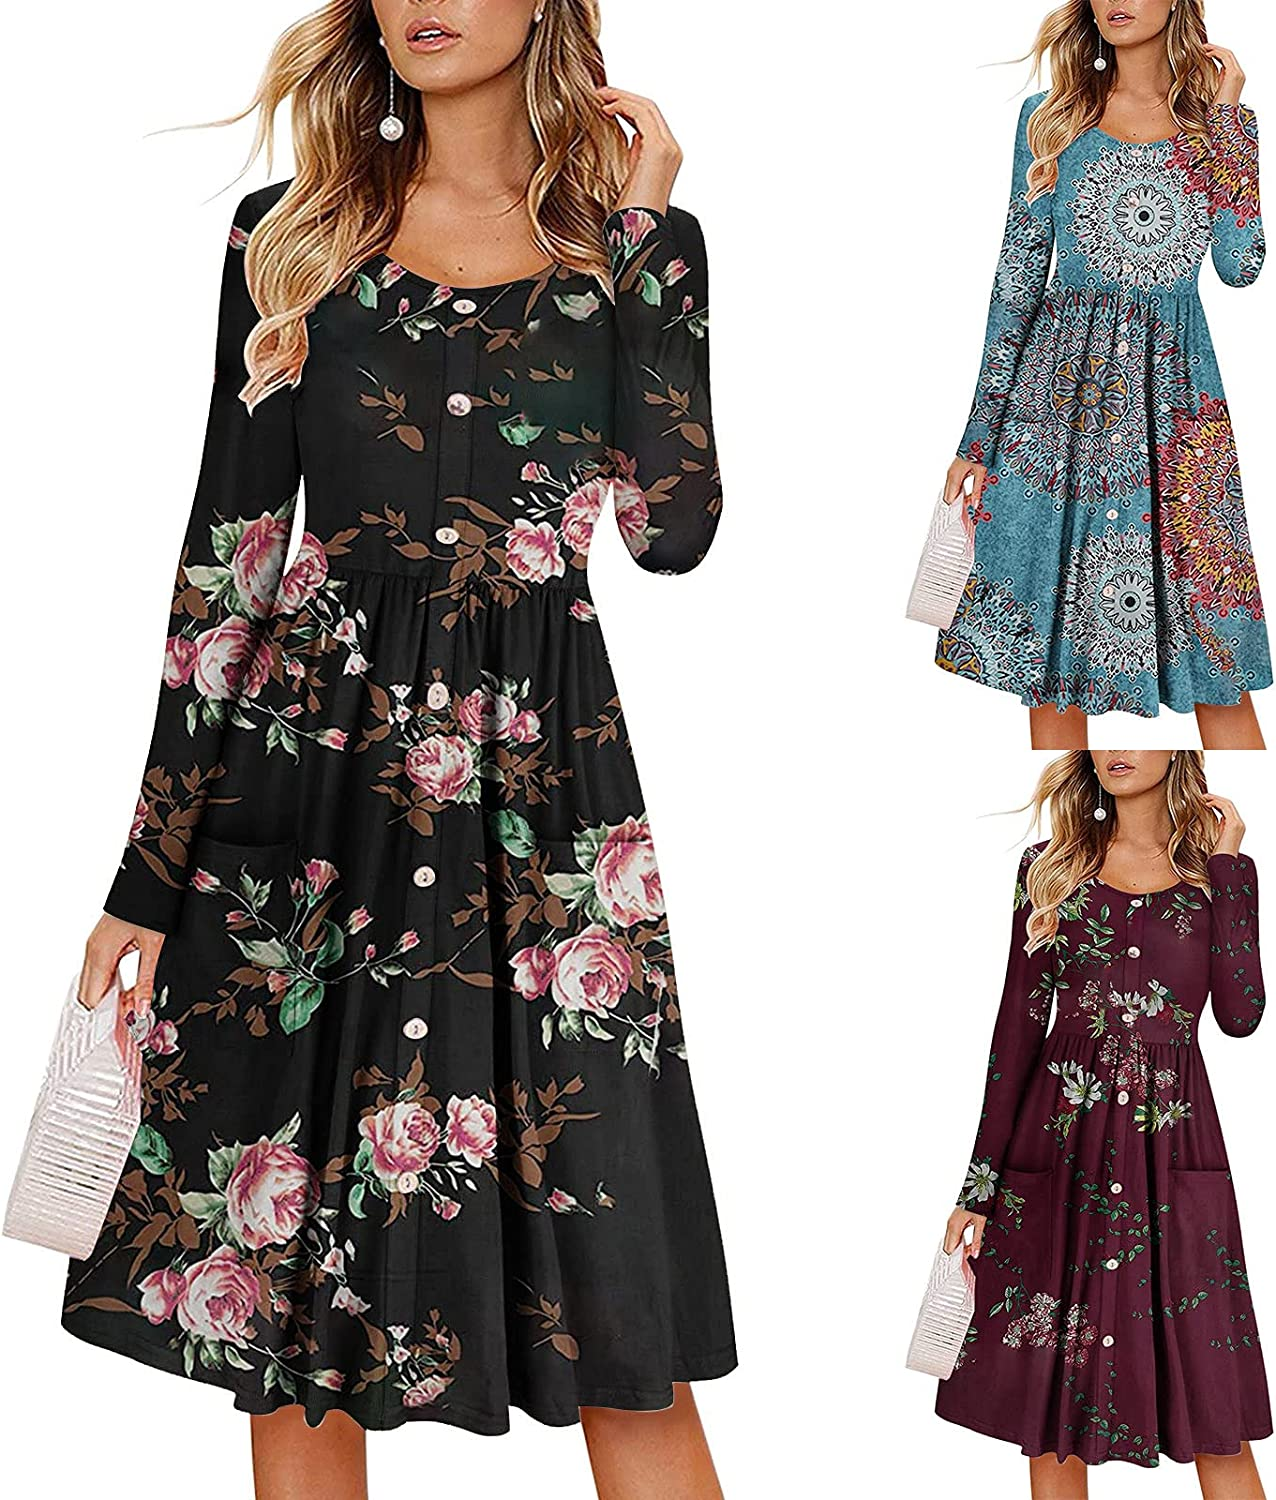 Womens Dresses Casual Long Sleeve Sundress Floral Graphic Print Cocktail Dress O Neck Midi Skirt Pleated Swing Gowns